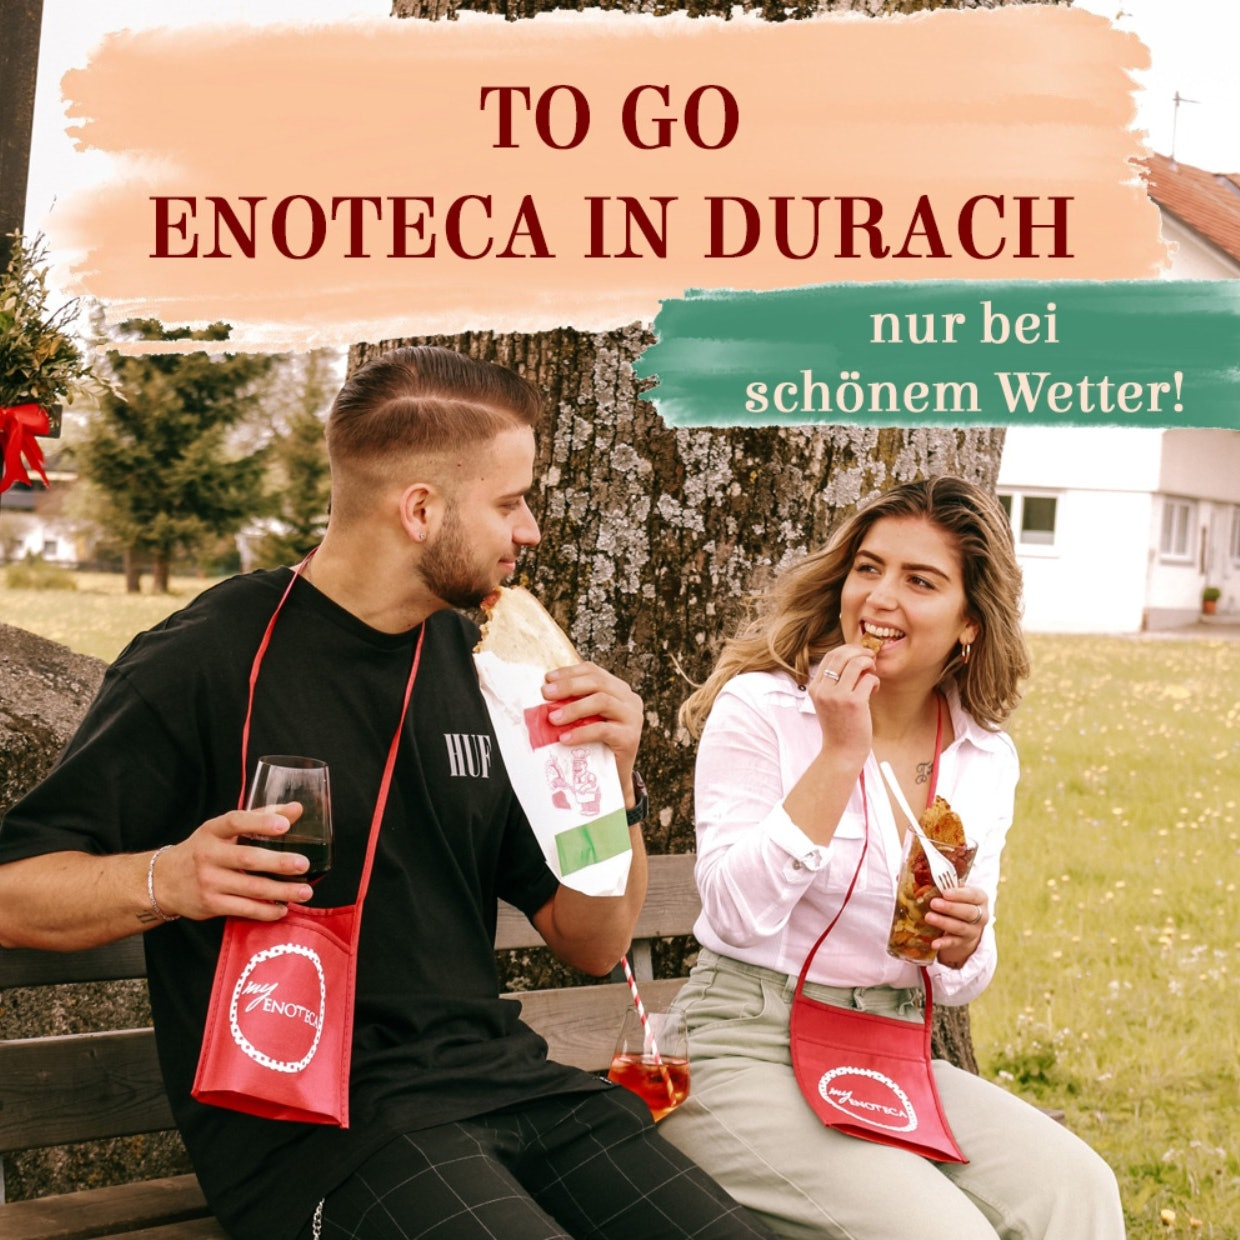 TO GO ENOTECA IN DURACH